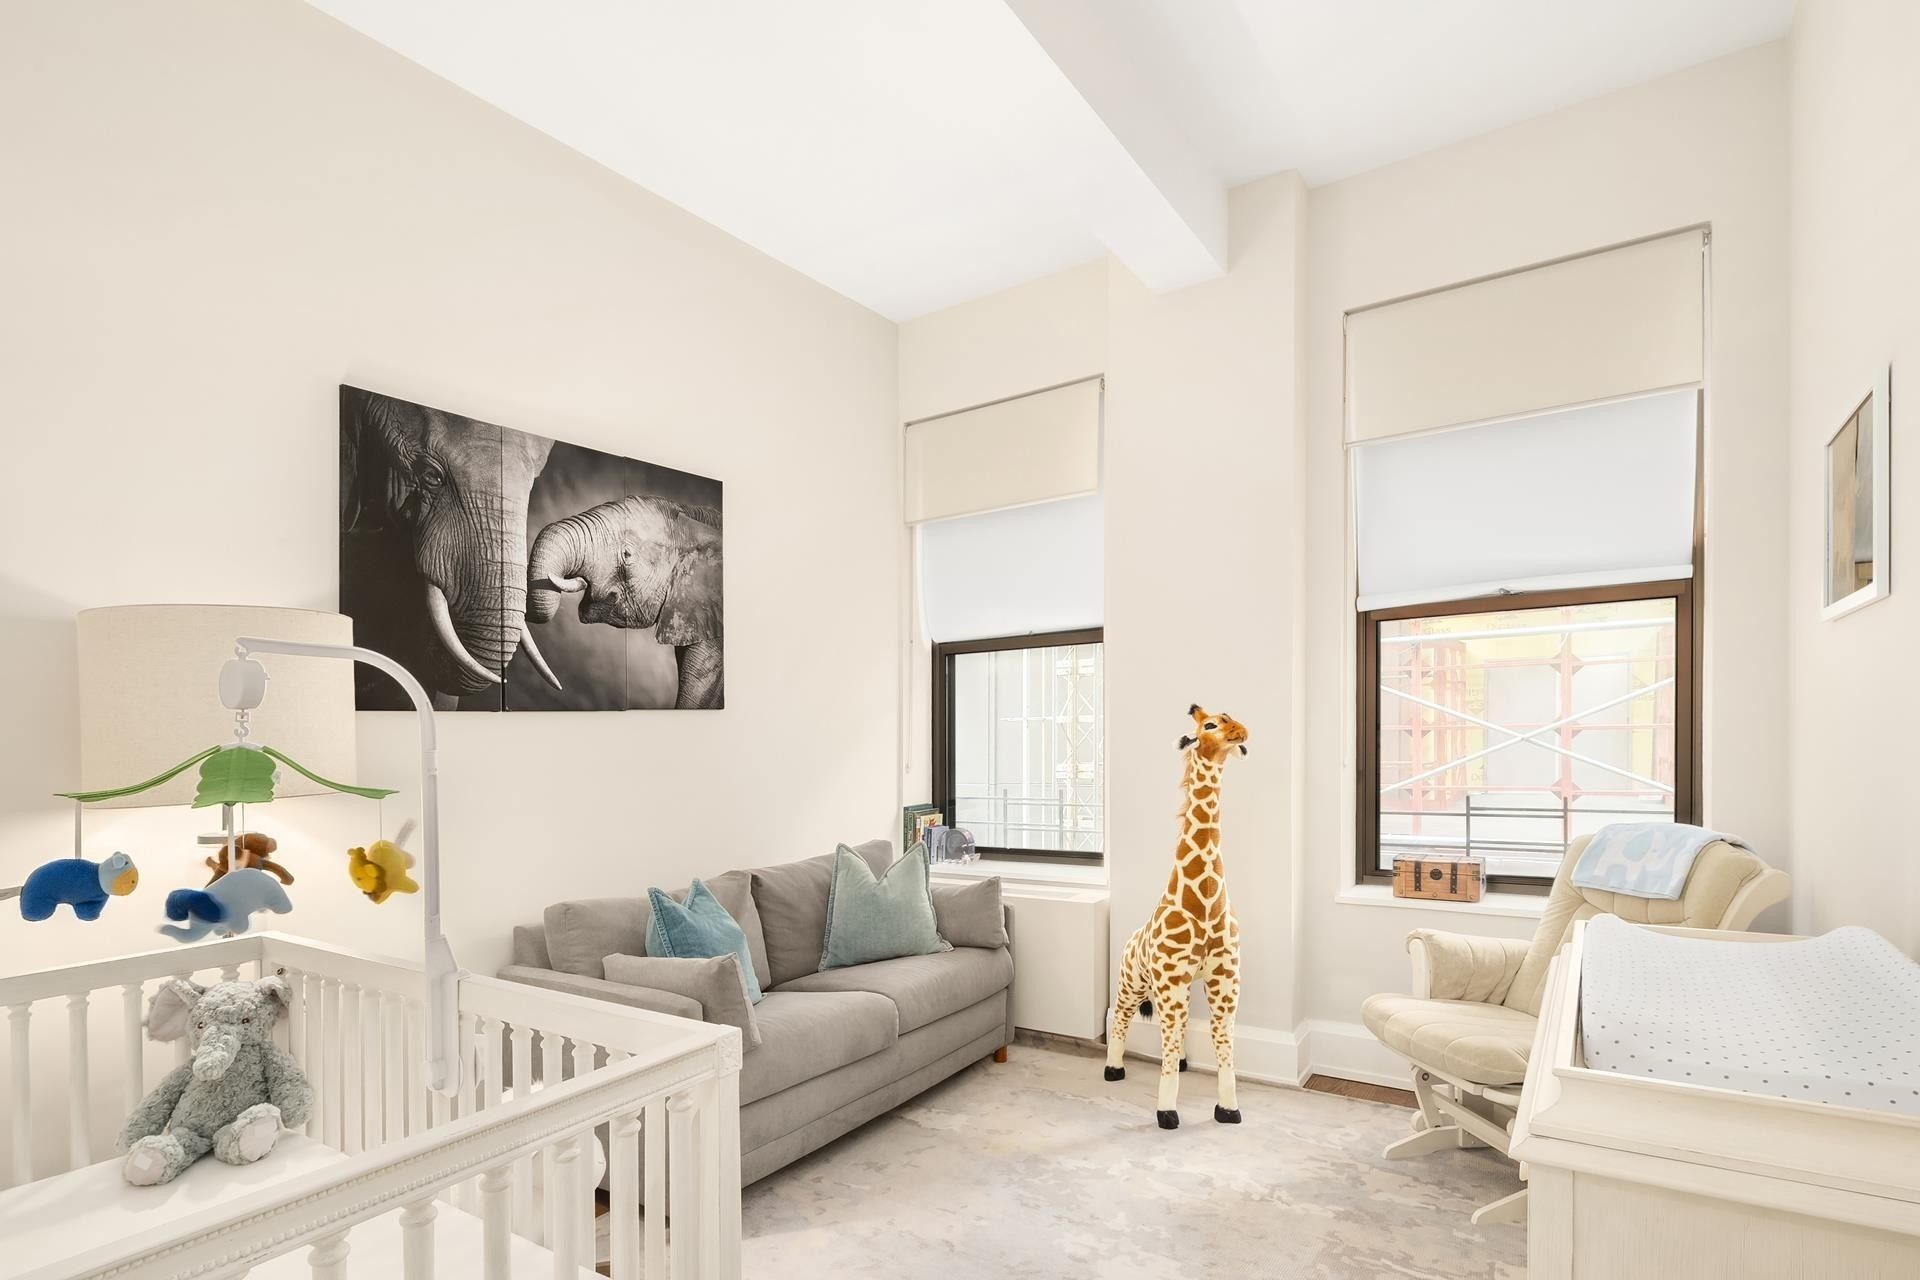 7. Condominiums for Sale at The Parkwood, 31 E 28TH ST , 9E NoMad, New York, NY 10016